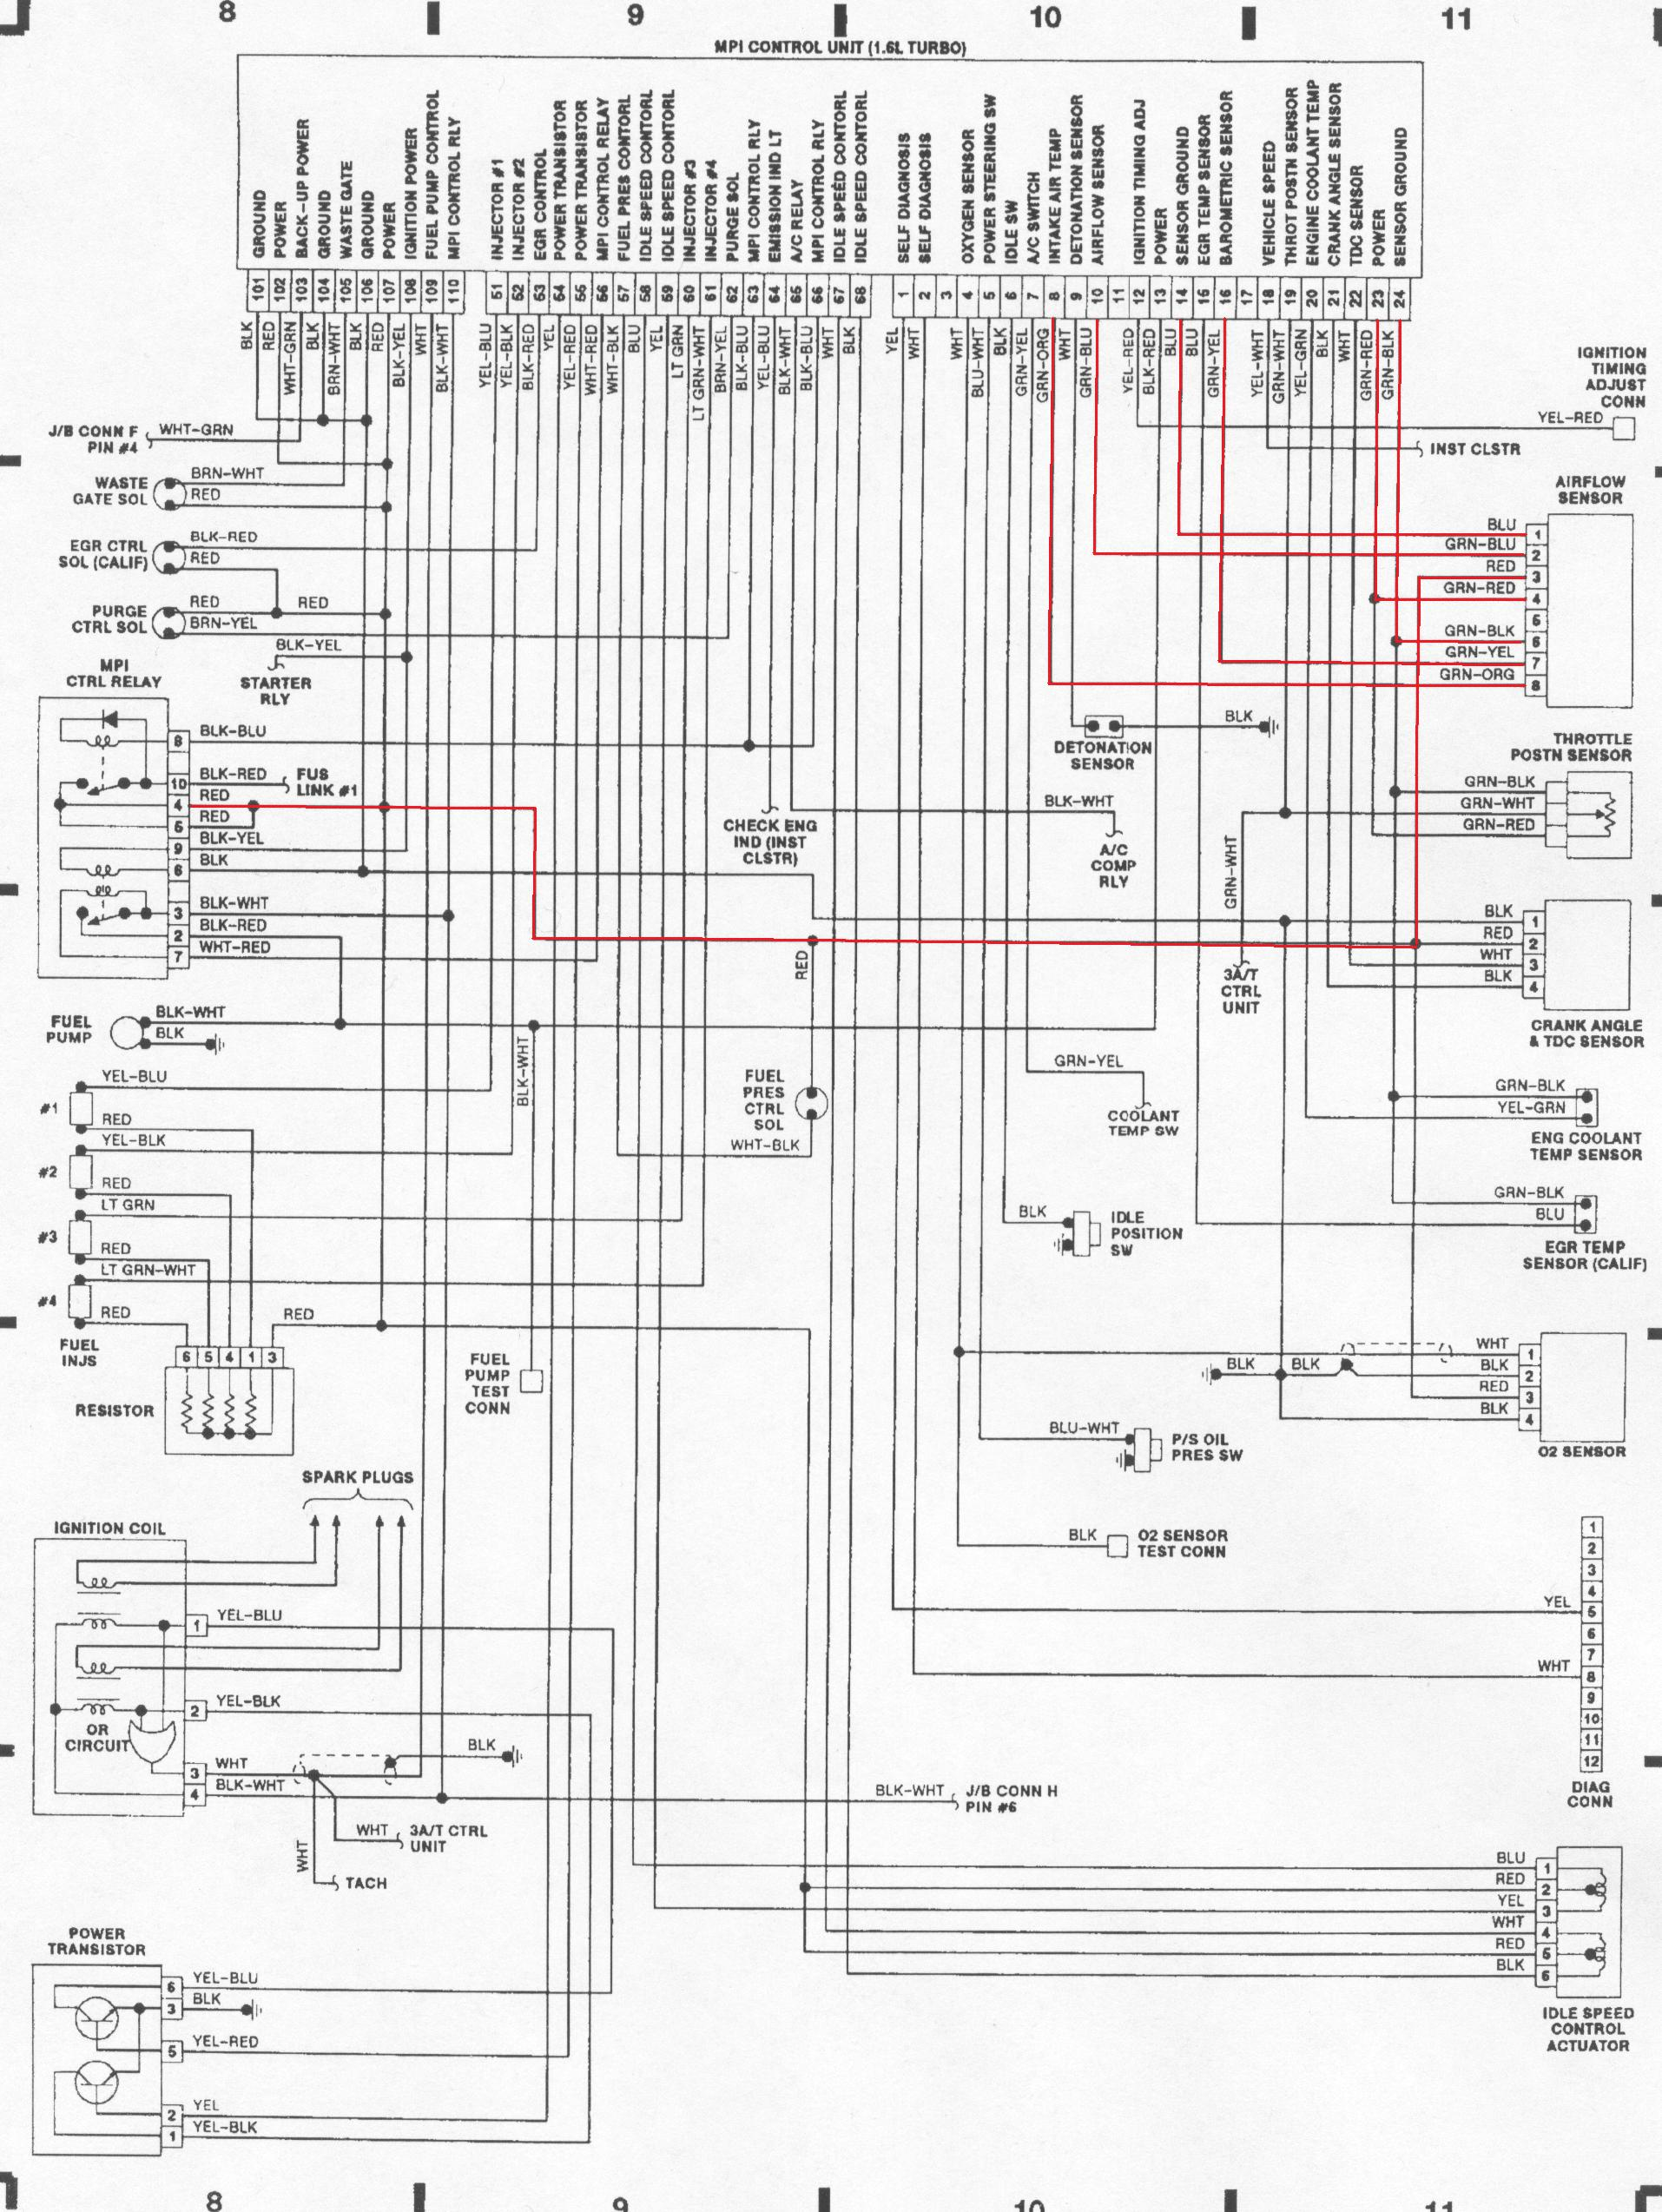 Mitsubishi Evo 3 Ecu Wiring Diagram Library E36 Maf 4g61t Afm Electric